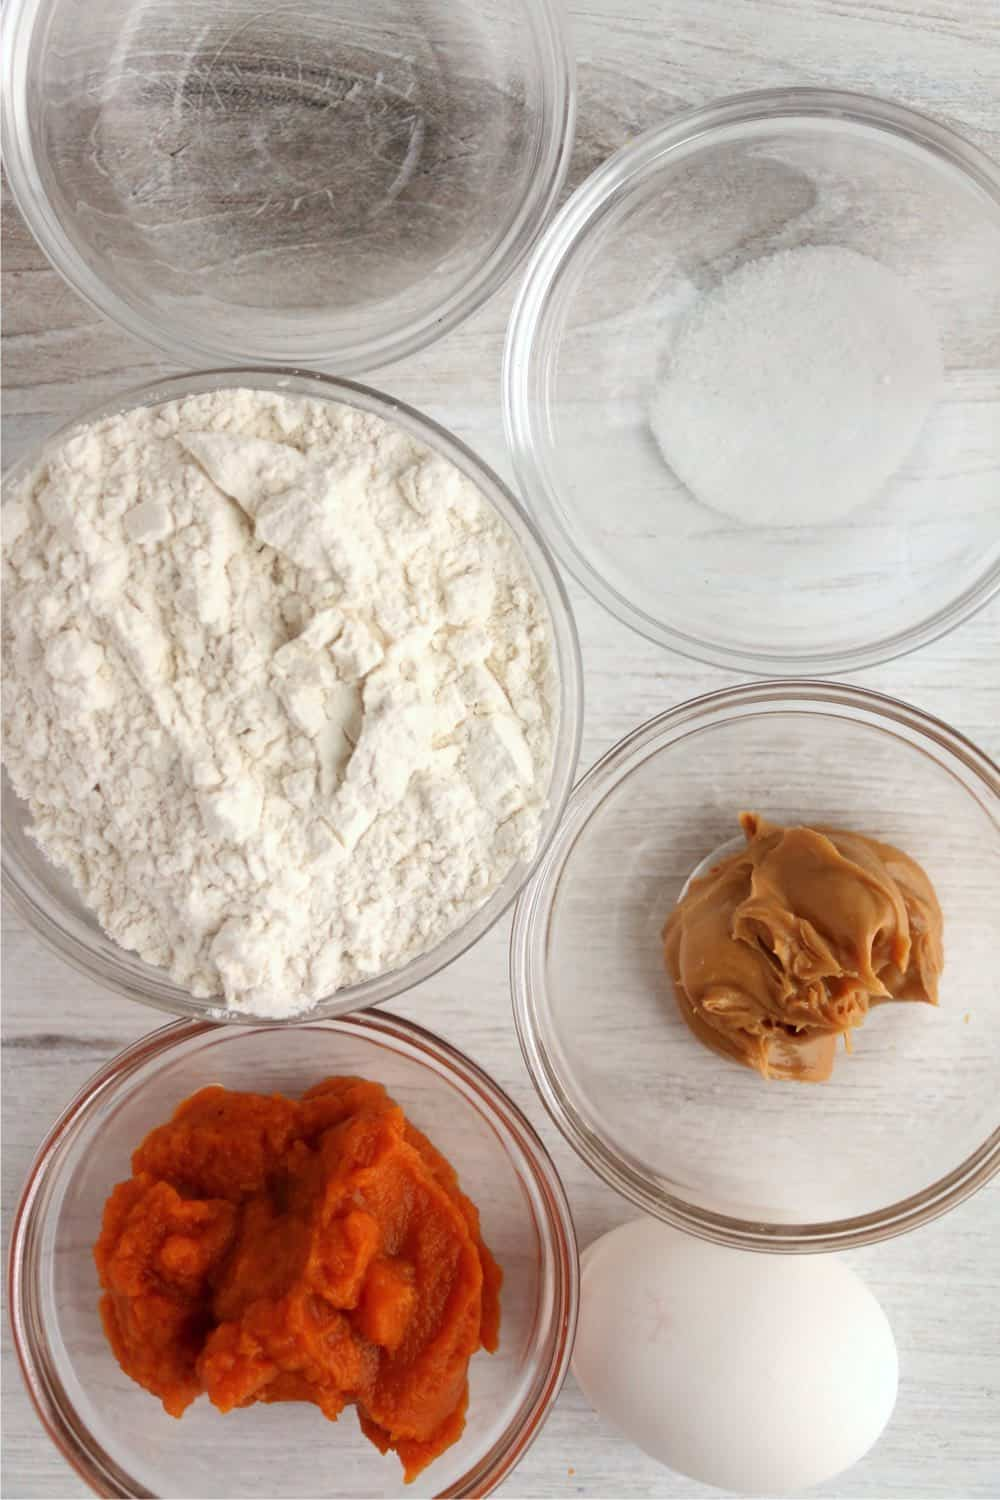 bows with recipe ingredients including flour, pumpkin, peanut butter, egg, salt, water